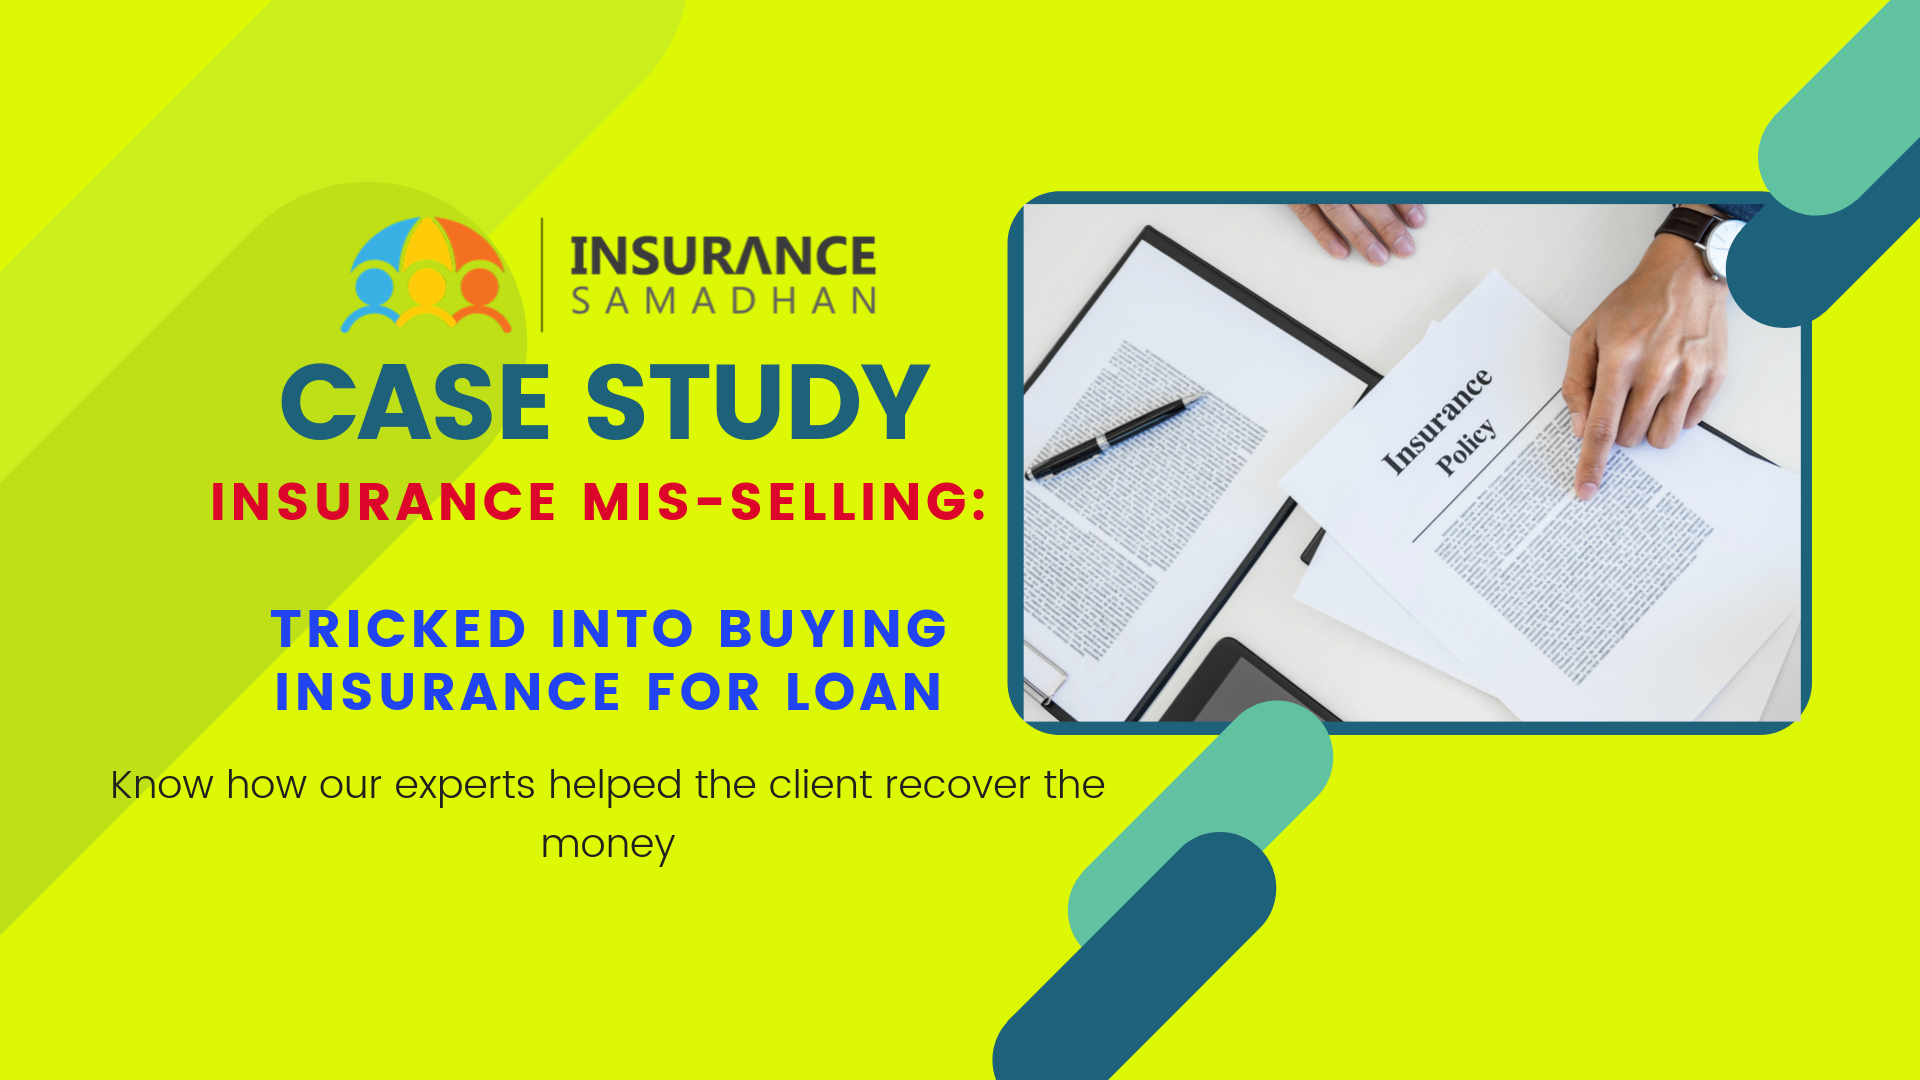 Case Study: Mis-selling of an Insurance Policy by a Broker